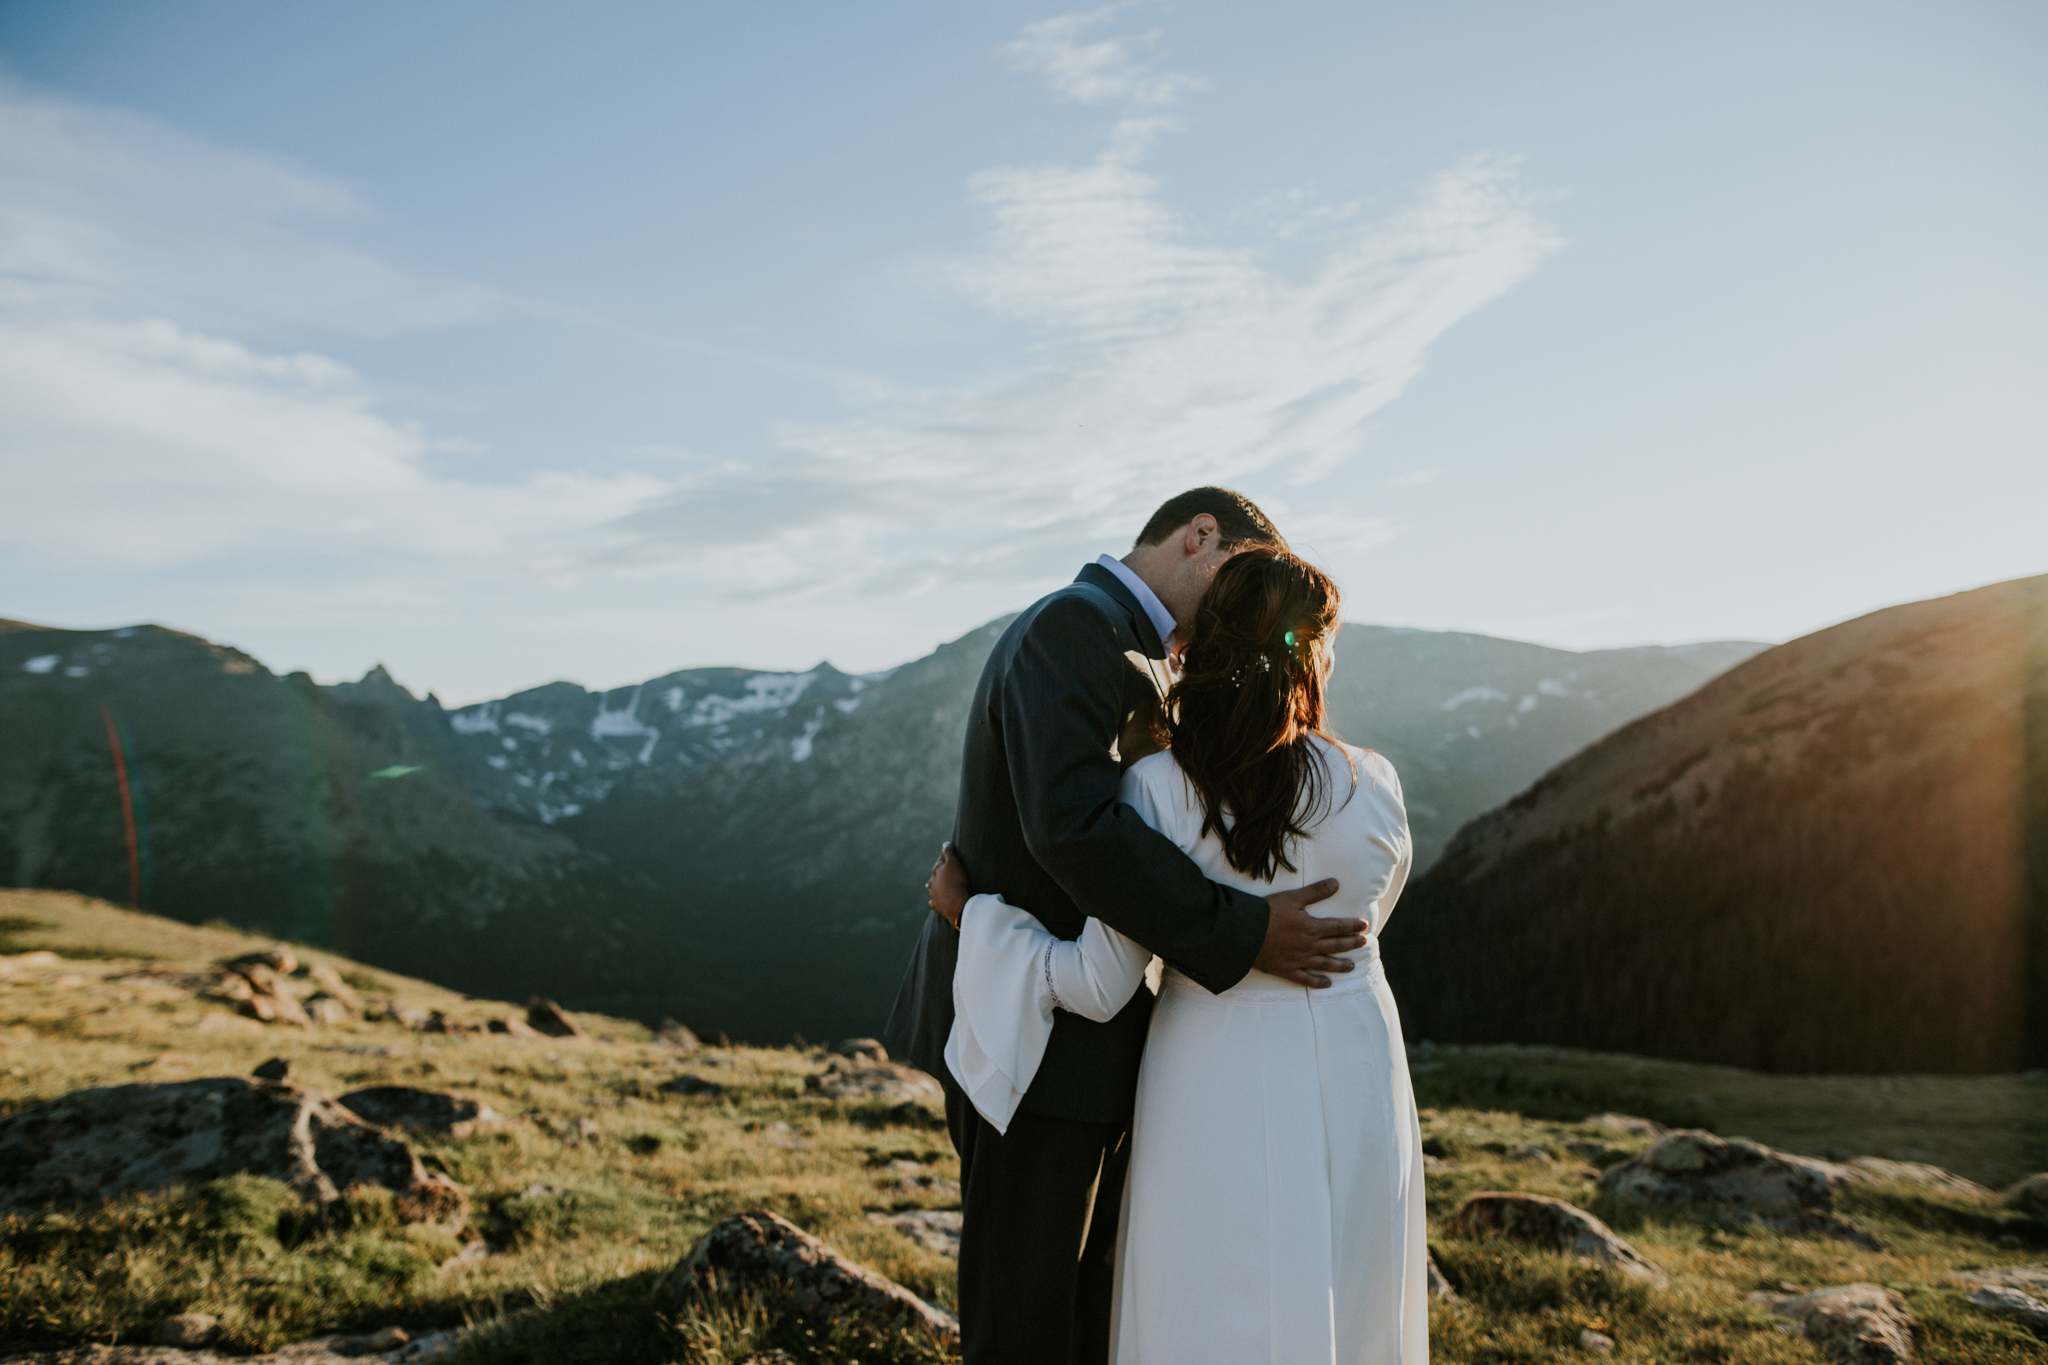 Destination Elopement Photographer - Vow of the Wild - Rocky Mountain National Park - Mountaintop Hiking Elopement - Trail Ridge Road Sunset